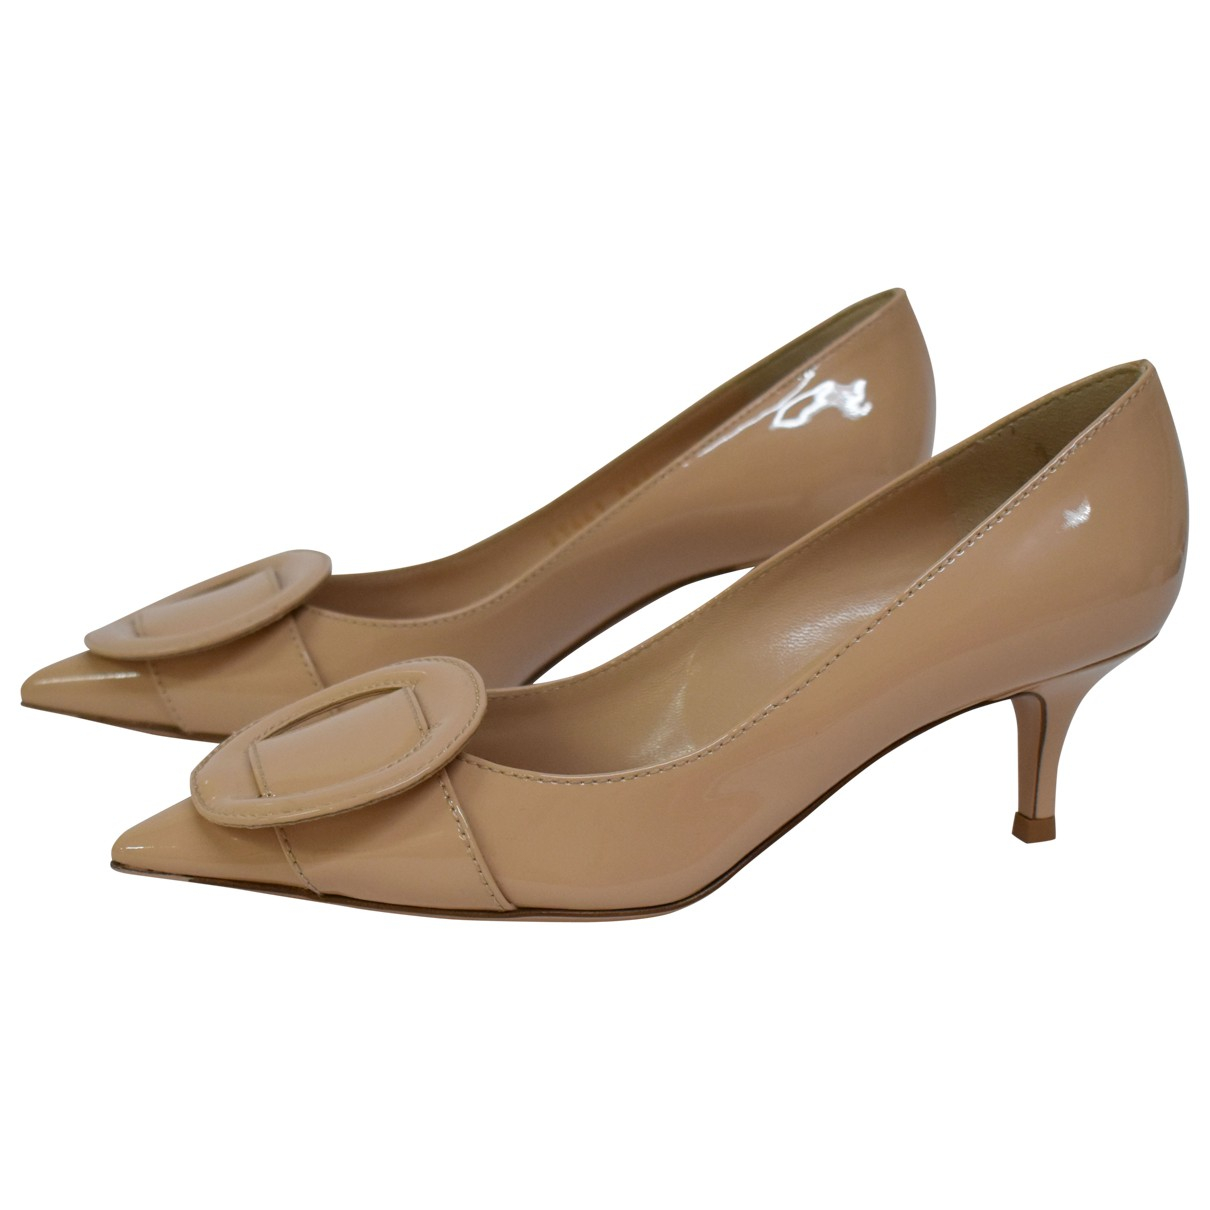 Gianvito Rossi \N Beige Patent leather Heels for Women 35 IT